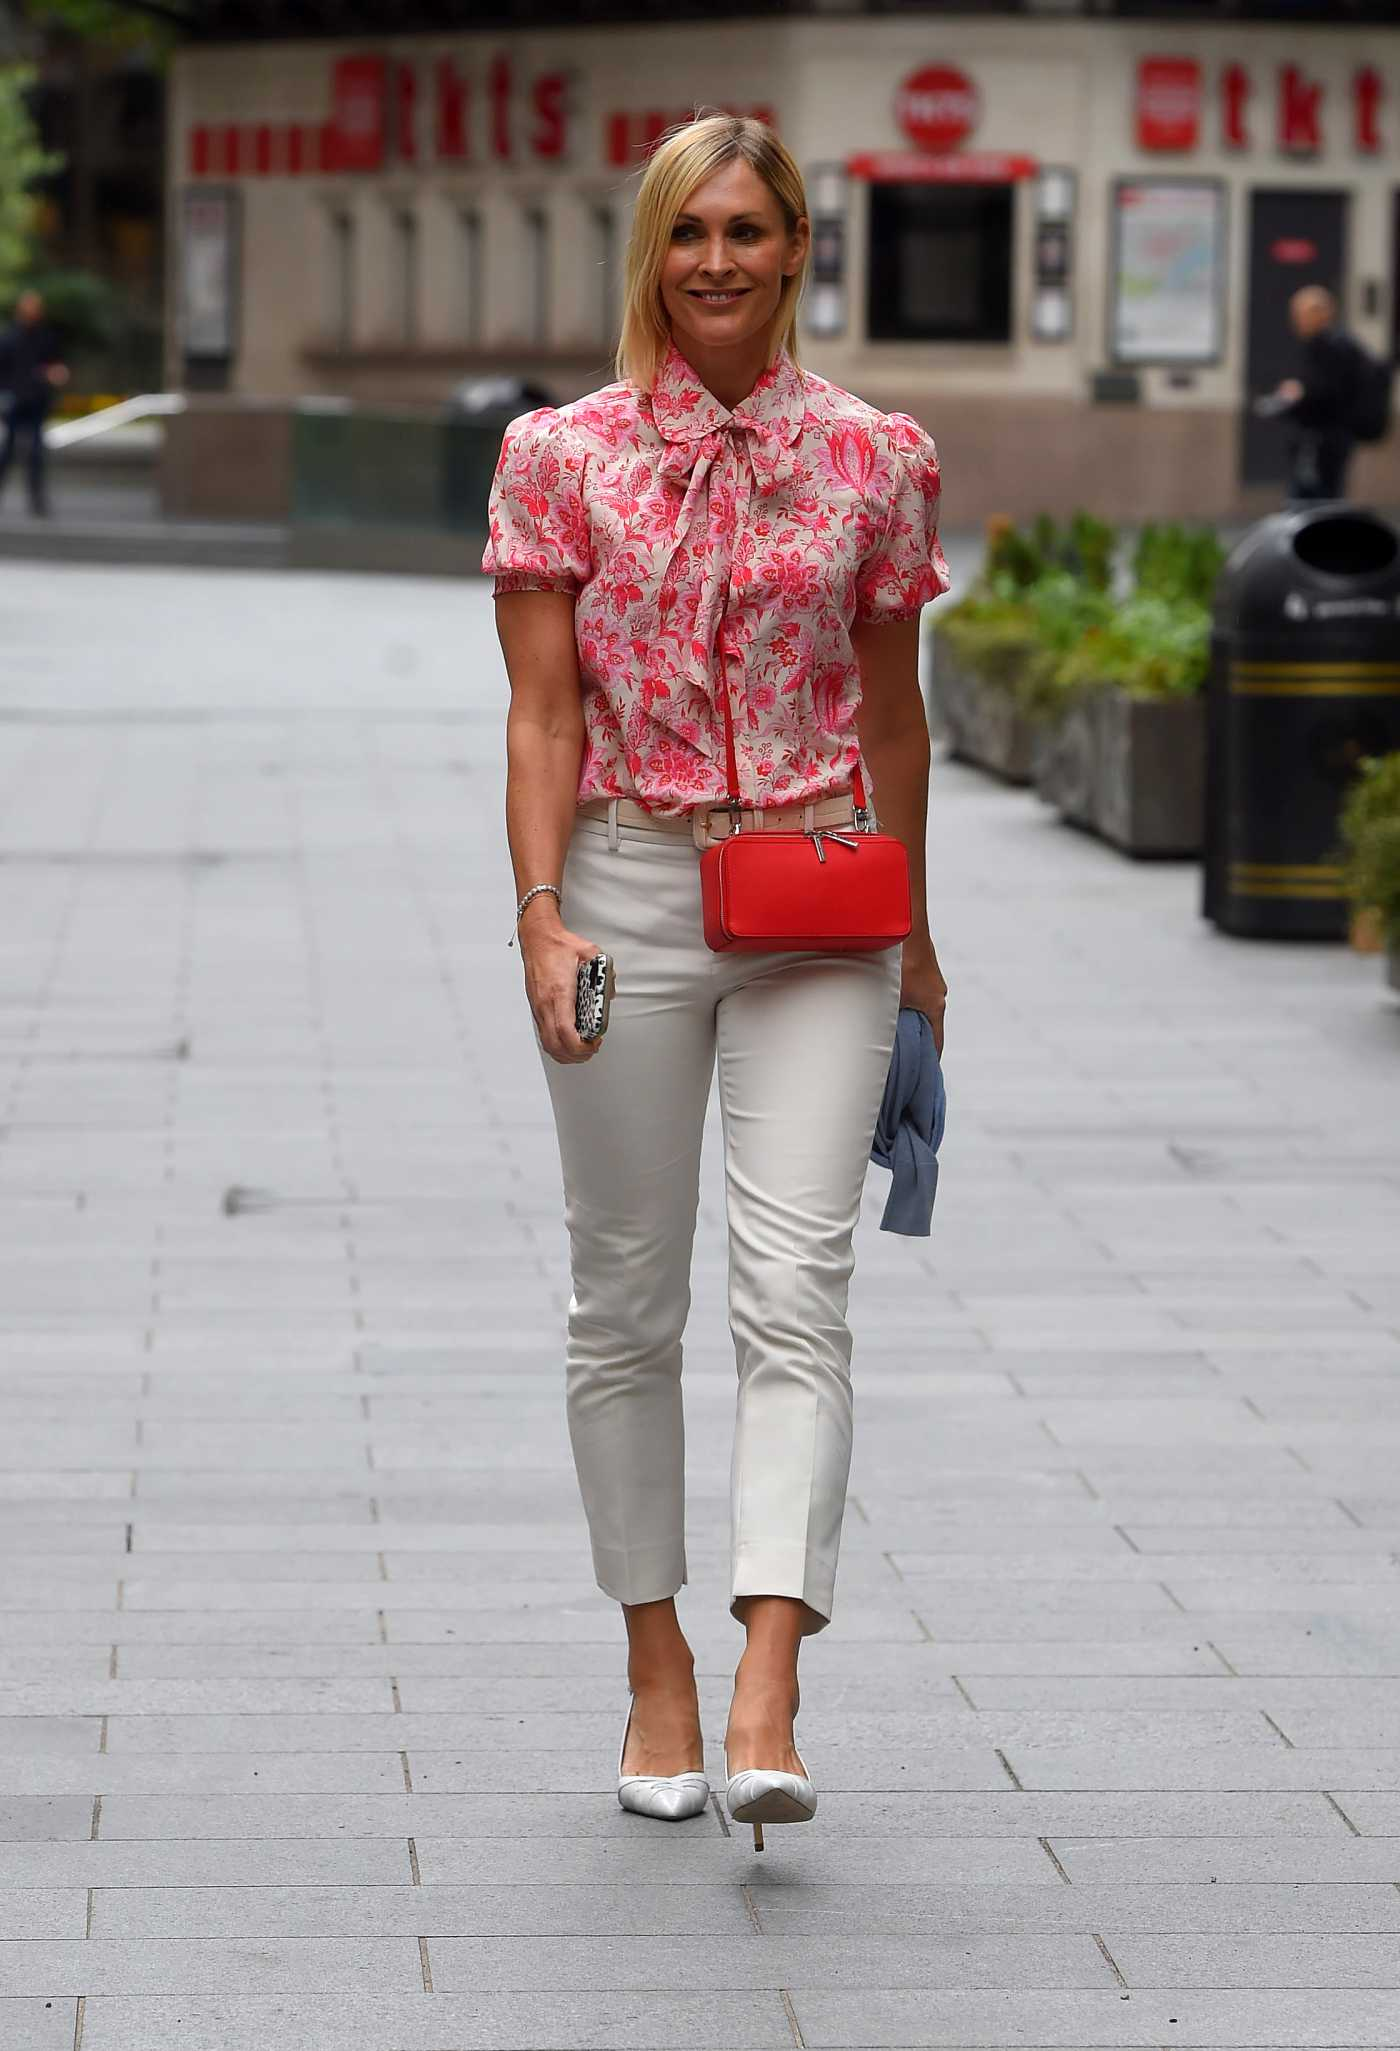 Jenni Falconer in a Floral Print Blouse Arrives at Global Radio in London 06/19/2020